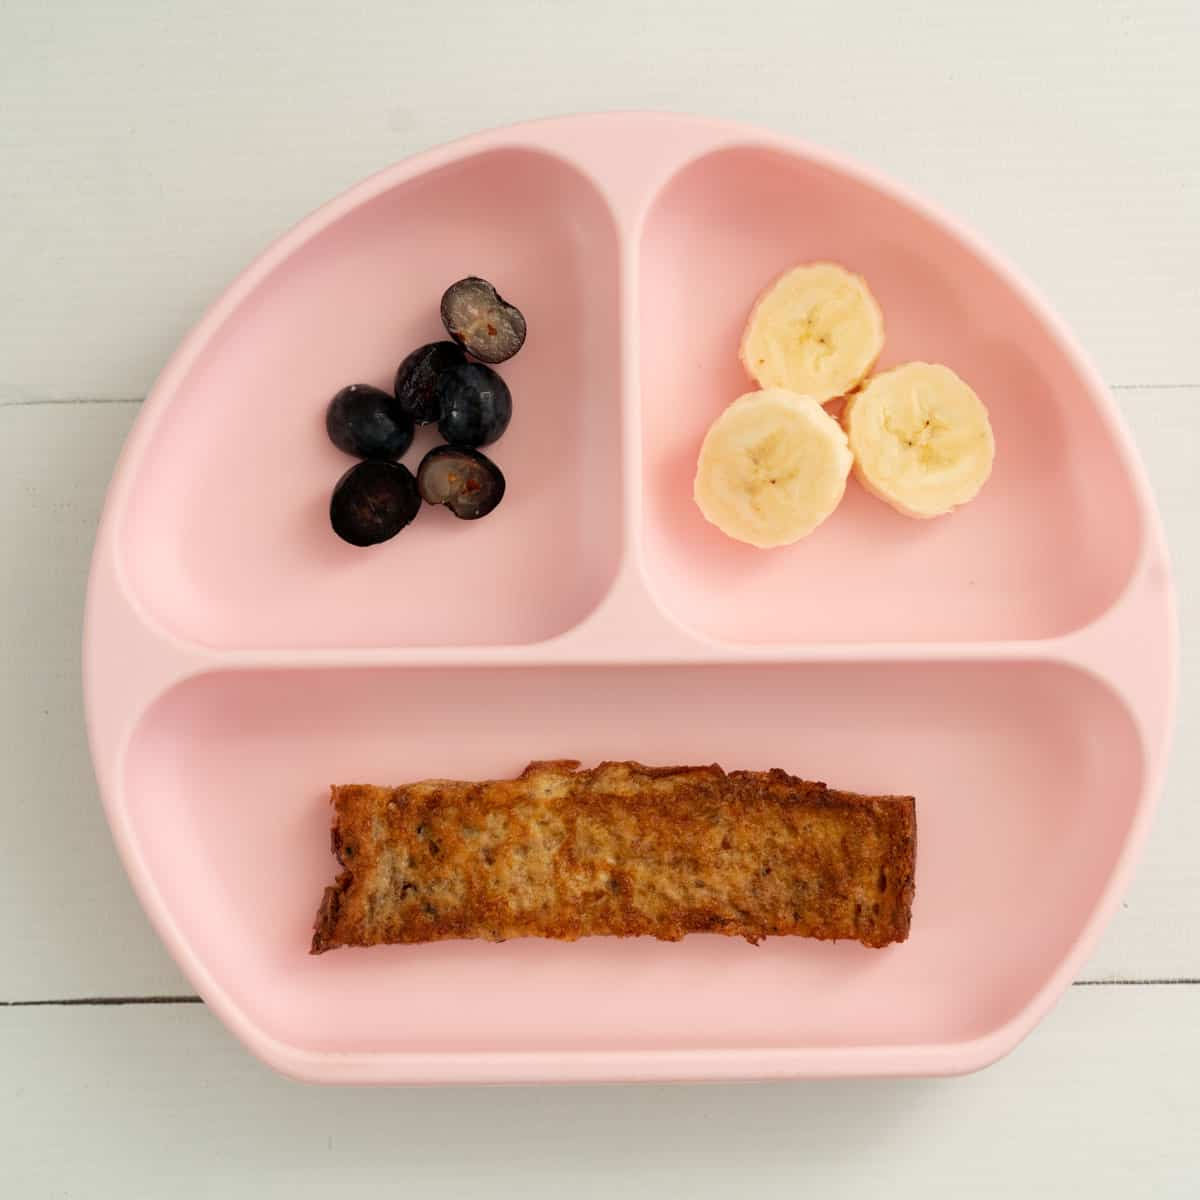 a pink baby breakfast plate with eggy bread, blueberries and sliced bananas